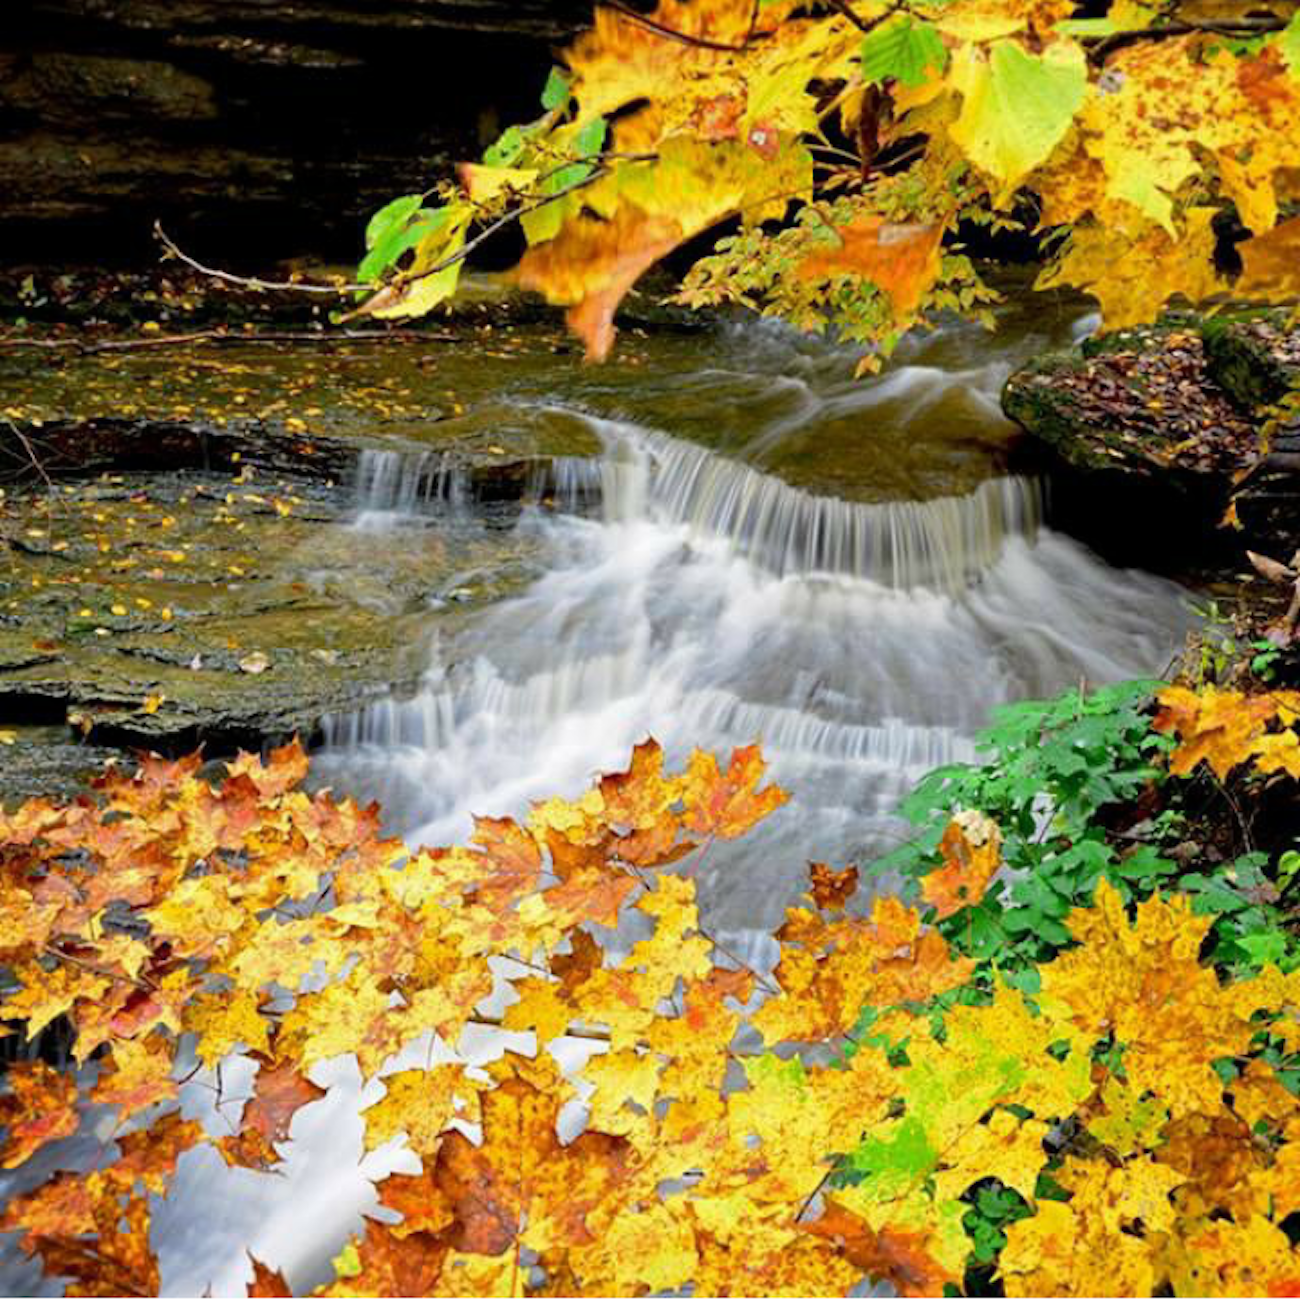 PLACE: Clifty Falls State Park in Indiana / DISTANCE: 80 miles southwest of Cincinnati, less than a two-hour drive / The signature waterfalls of Indiana's Clifty Falls State Park are often like delicate bridal-veil mists in the fall, but still stunning when surrounded by brilliant fall foliage. The park is located near Madison, IN with entrances on State Roads 56 and 62. / Image courtesy of Indiana Office of Tourism Development // Published: 10.19.19